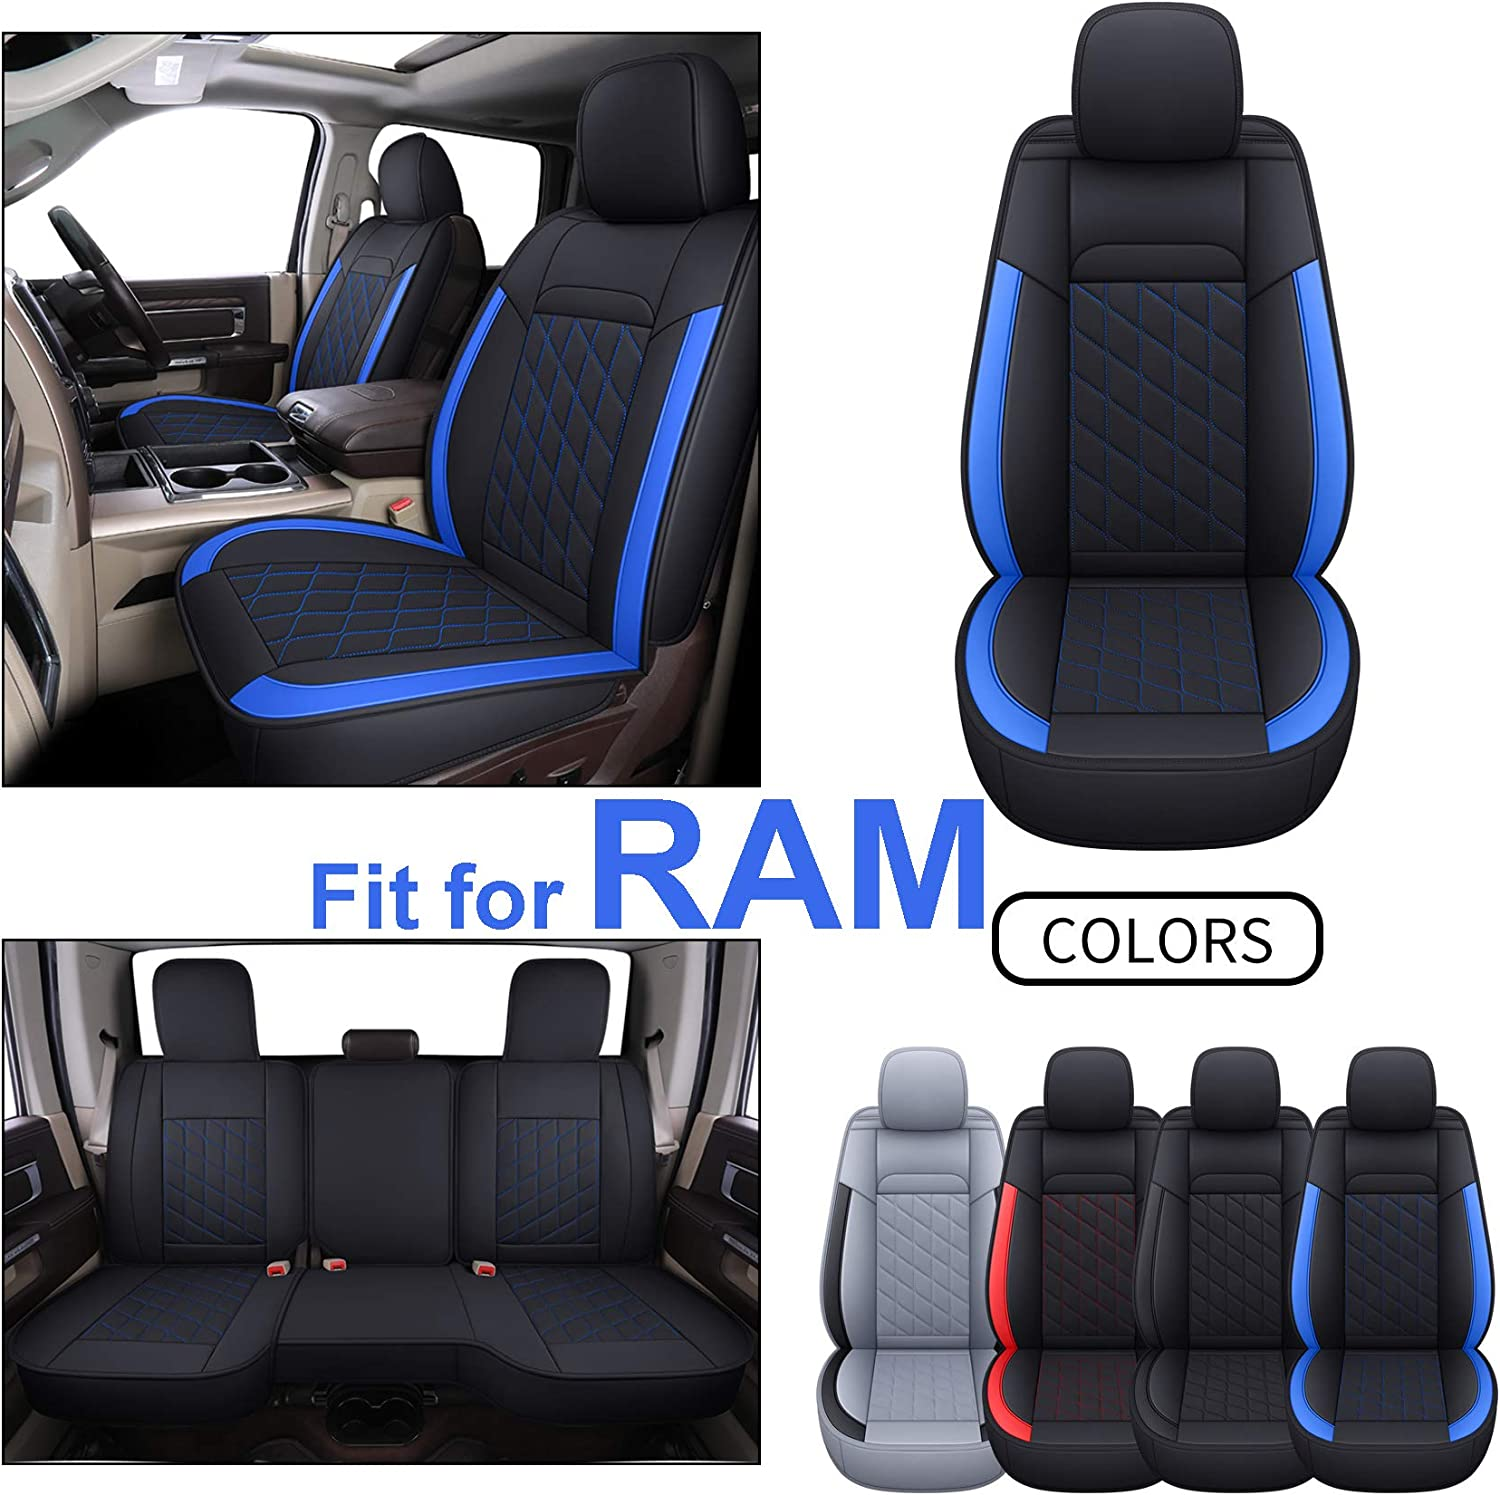 2019 2015 2018 2021 2016,2017 2020 2013 2014 Black INCH EMPIRE Seat Cover Full Set Fit for RAM 1500 2500 3500 2012-2021 with Curved Back Bench Synthetic Leather Water-Proof 2012